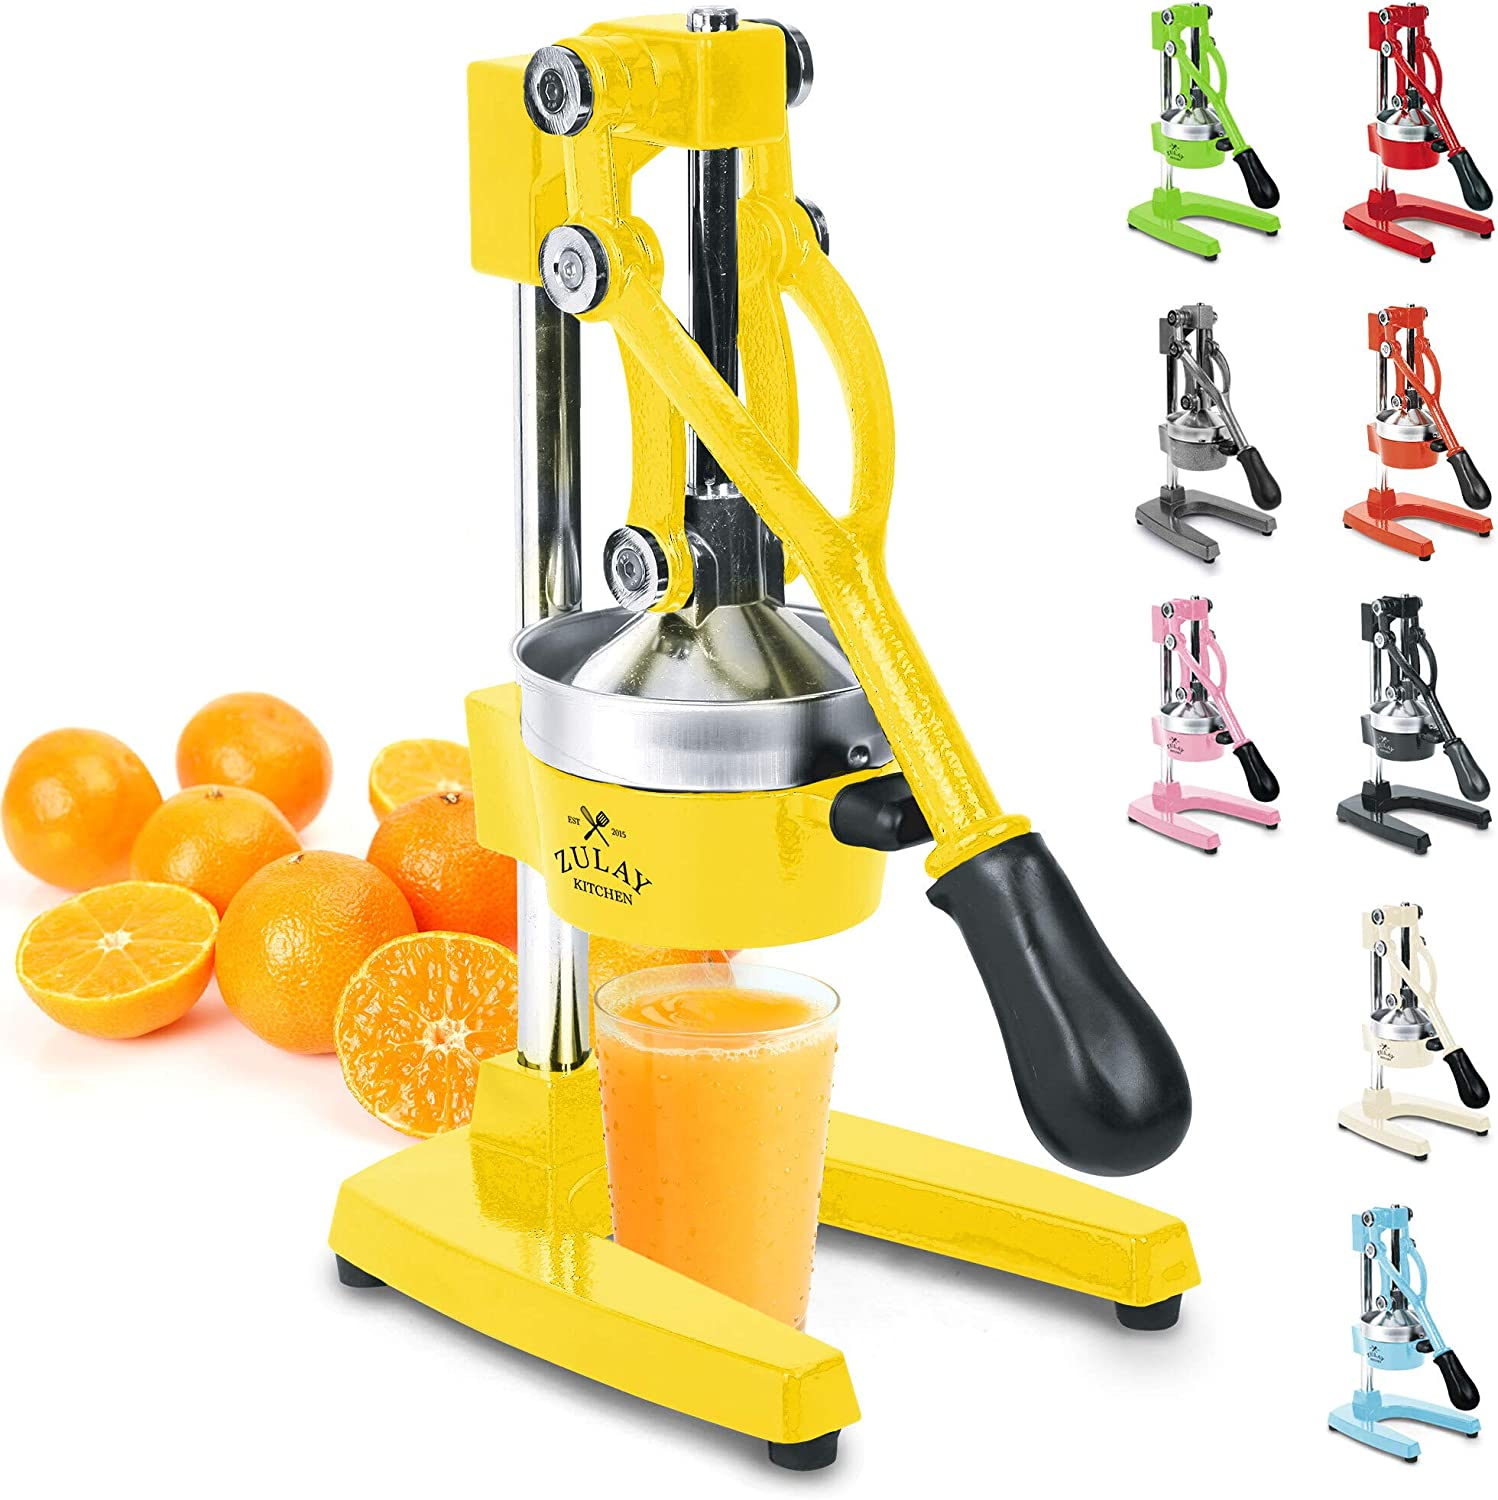 Zulay Professional Citrus Juicer - Manual Citrus Press and Orange Squeezer - Metal Lemon Squeezer - Premium Quality Heavy Duty Manual Orange Juicer and Lime Squeezer Press Stand, Yellow